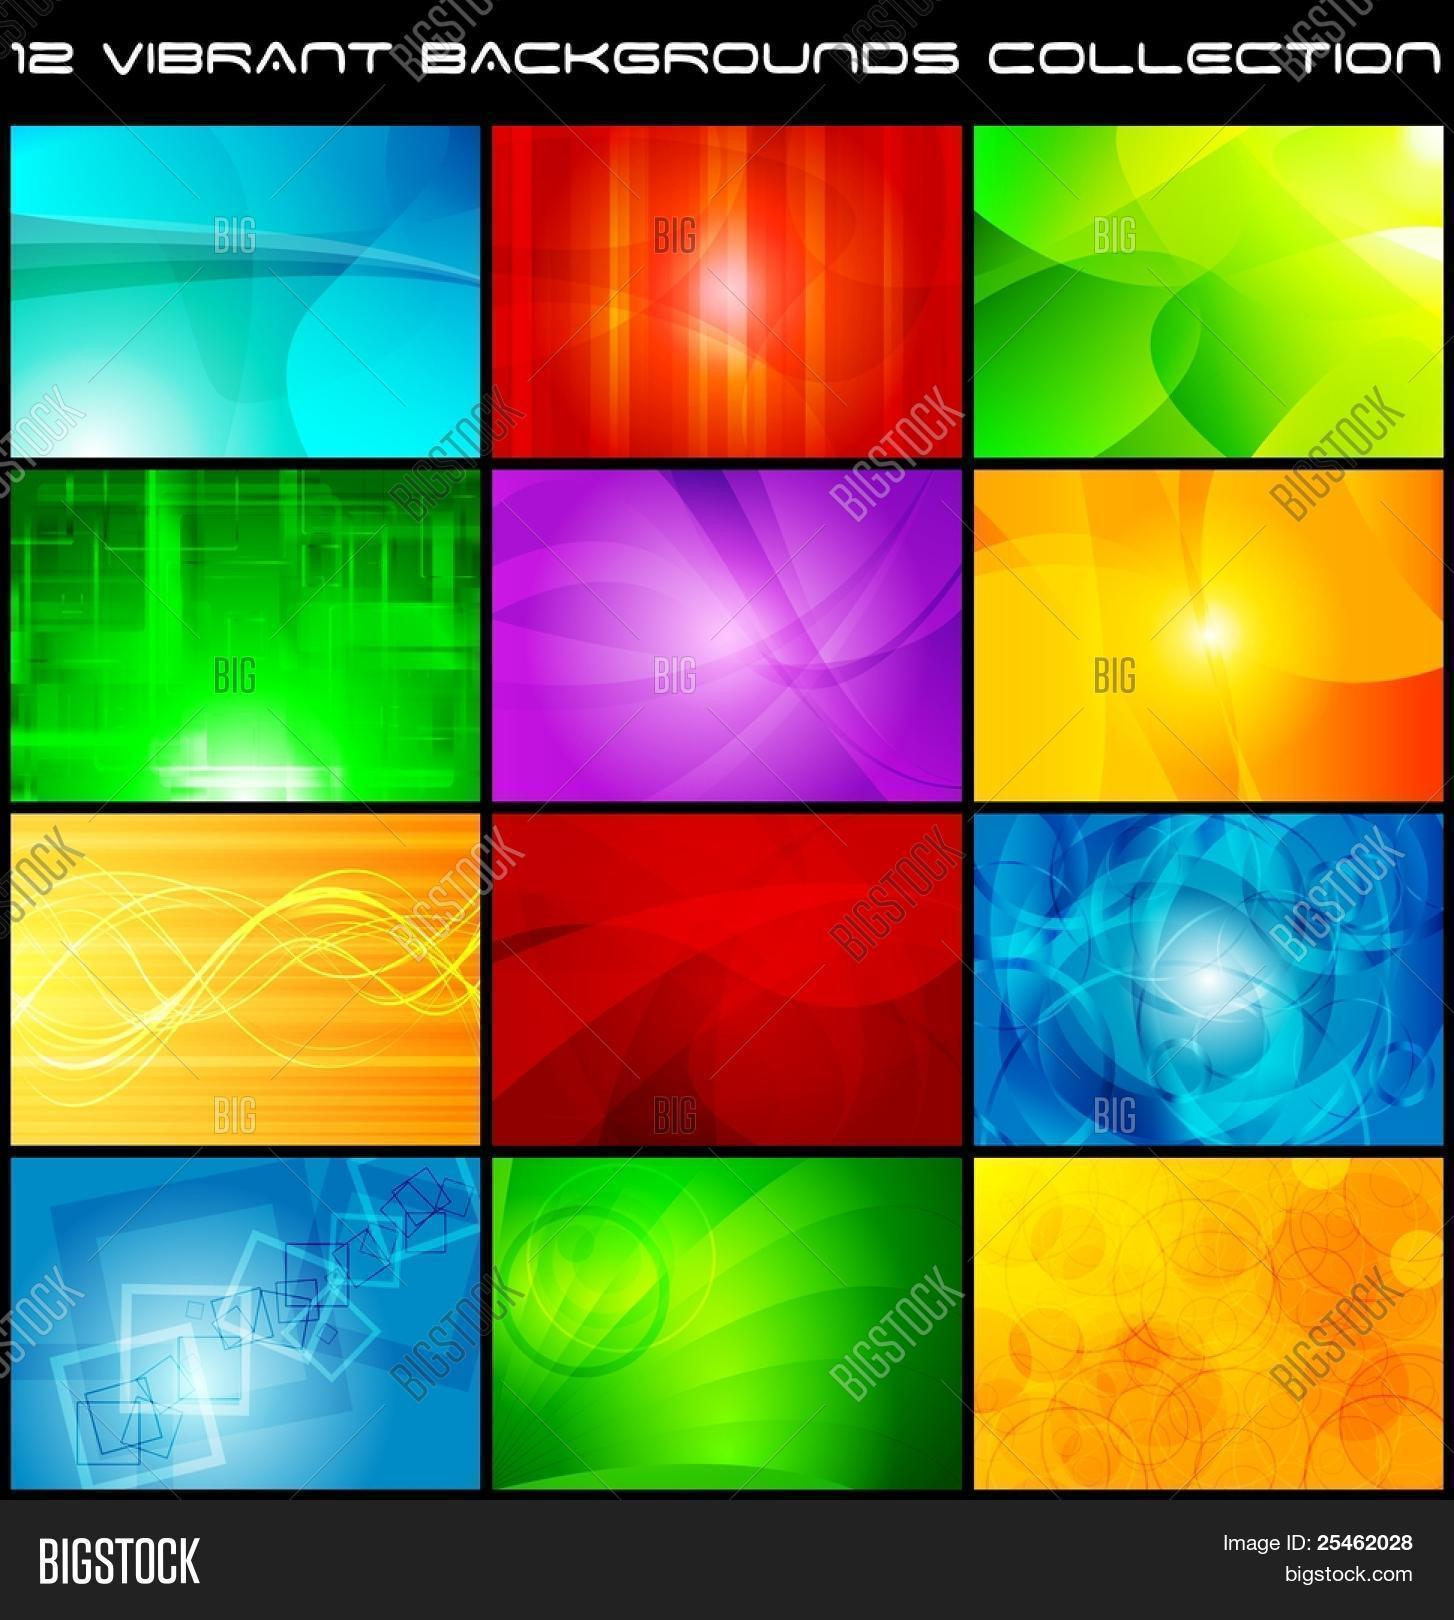 abstract,abstract background,abstract backgrounds,abstract background vector,abstraction,abstract wave,art,backdrop,background,background abstract,backgrounds abstract,backgrounds and textures,backgrounds textures,background texture,background textures,banner,bend,blue,blue abstract background,blue background abstract,blue background texture,bright,business,card,circle,collection,color,colorful,colorful abstract background,colourful,concept,creative,decoration,design,element,fresh,gradient,gradient background,graphic,illustration,iridescent,light,modern,motion,multicolored,orange,red,red abstract,sample,set,shape,simple,simple background,square,style,template,texture,vector,vibrant,violet,wave,wavy